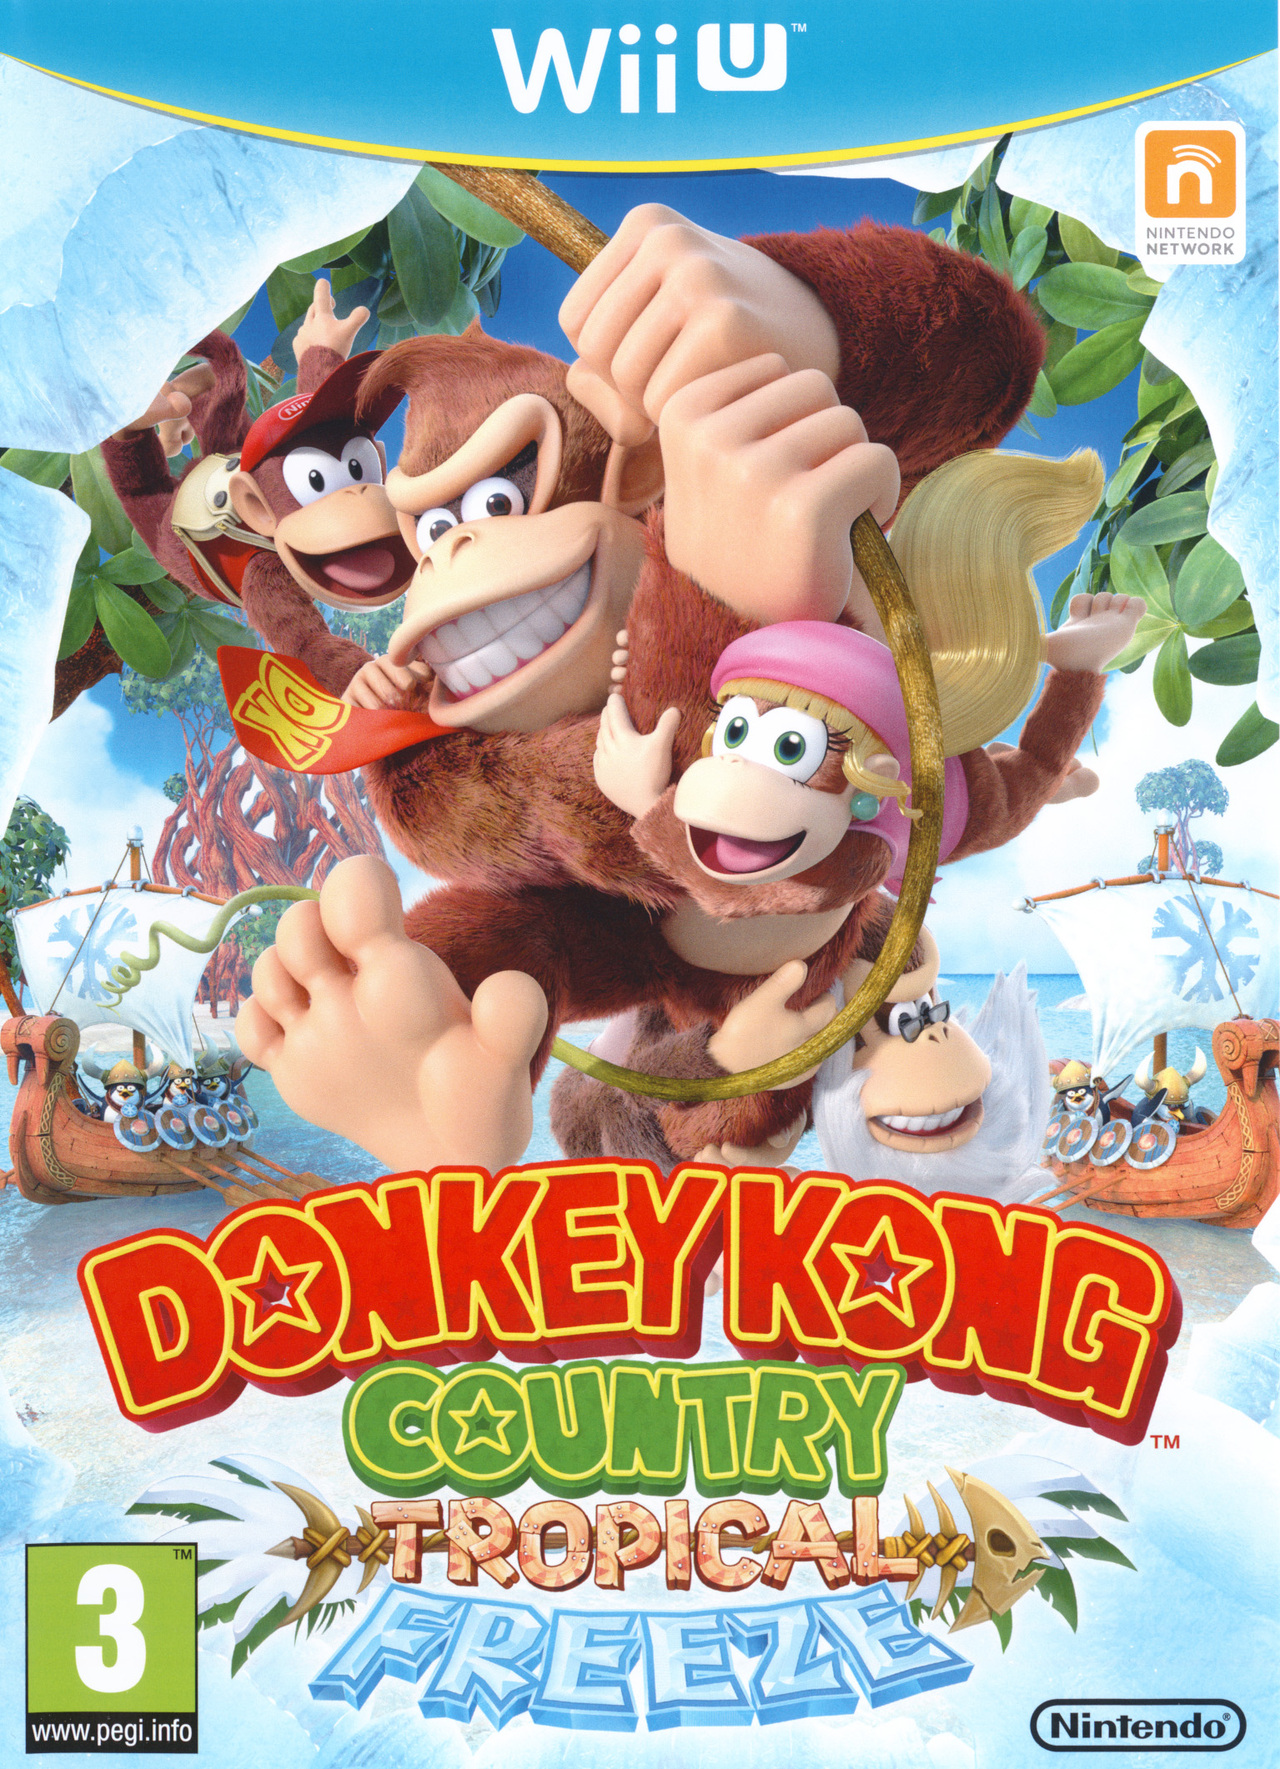 http://image.jeuxvideo.com/images/jaquettes/00049046/jaquette-donkey-kong-country-tropical-freeze-wii-u-wiiu-cover-avant-g-1392974712.jpg